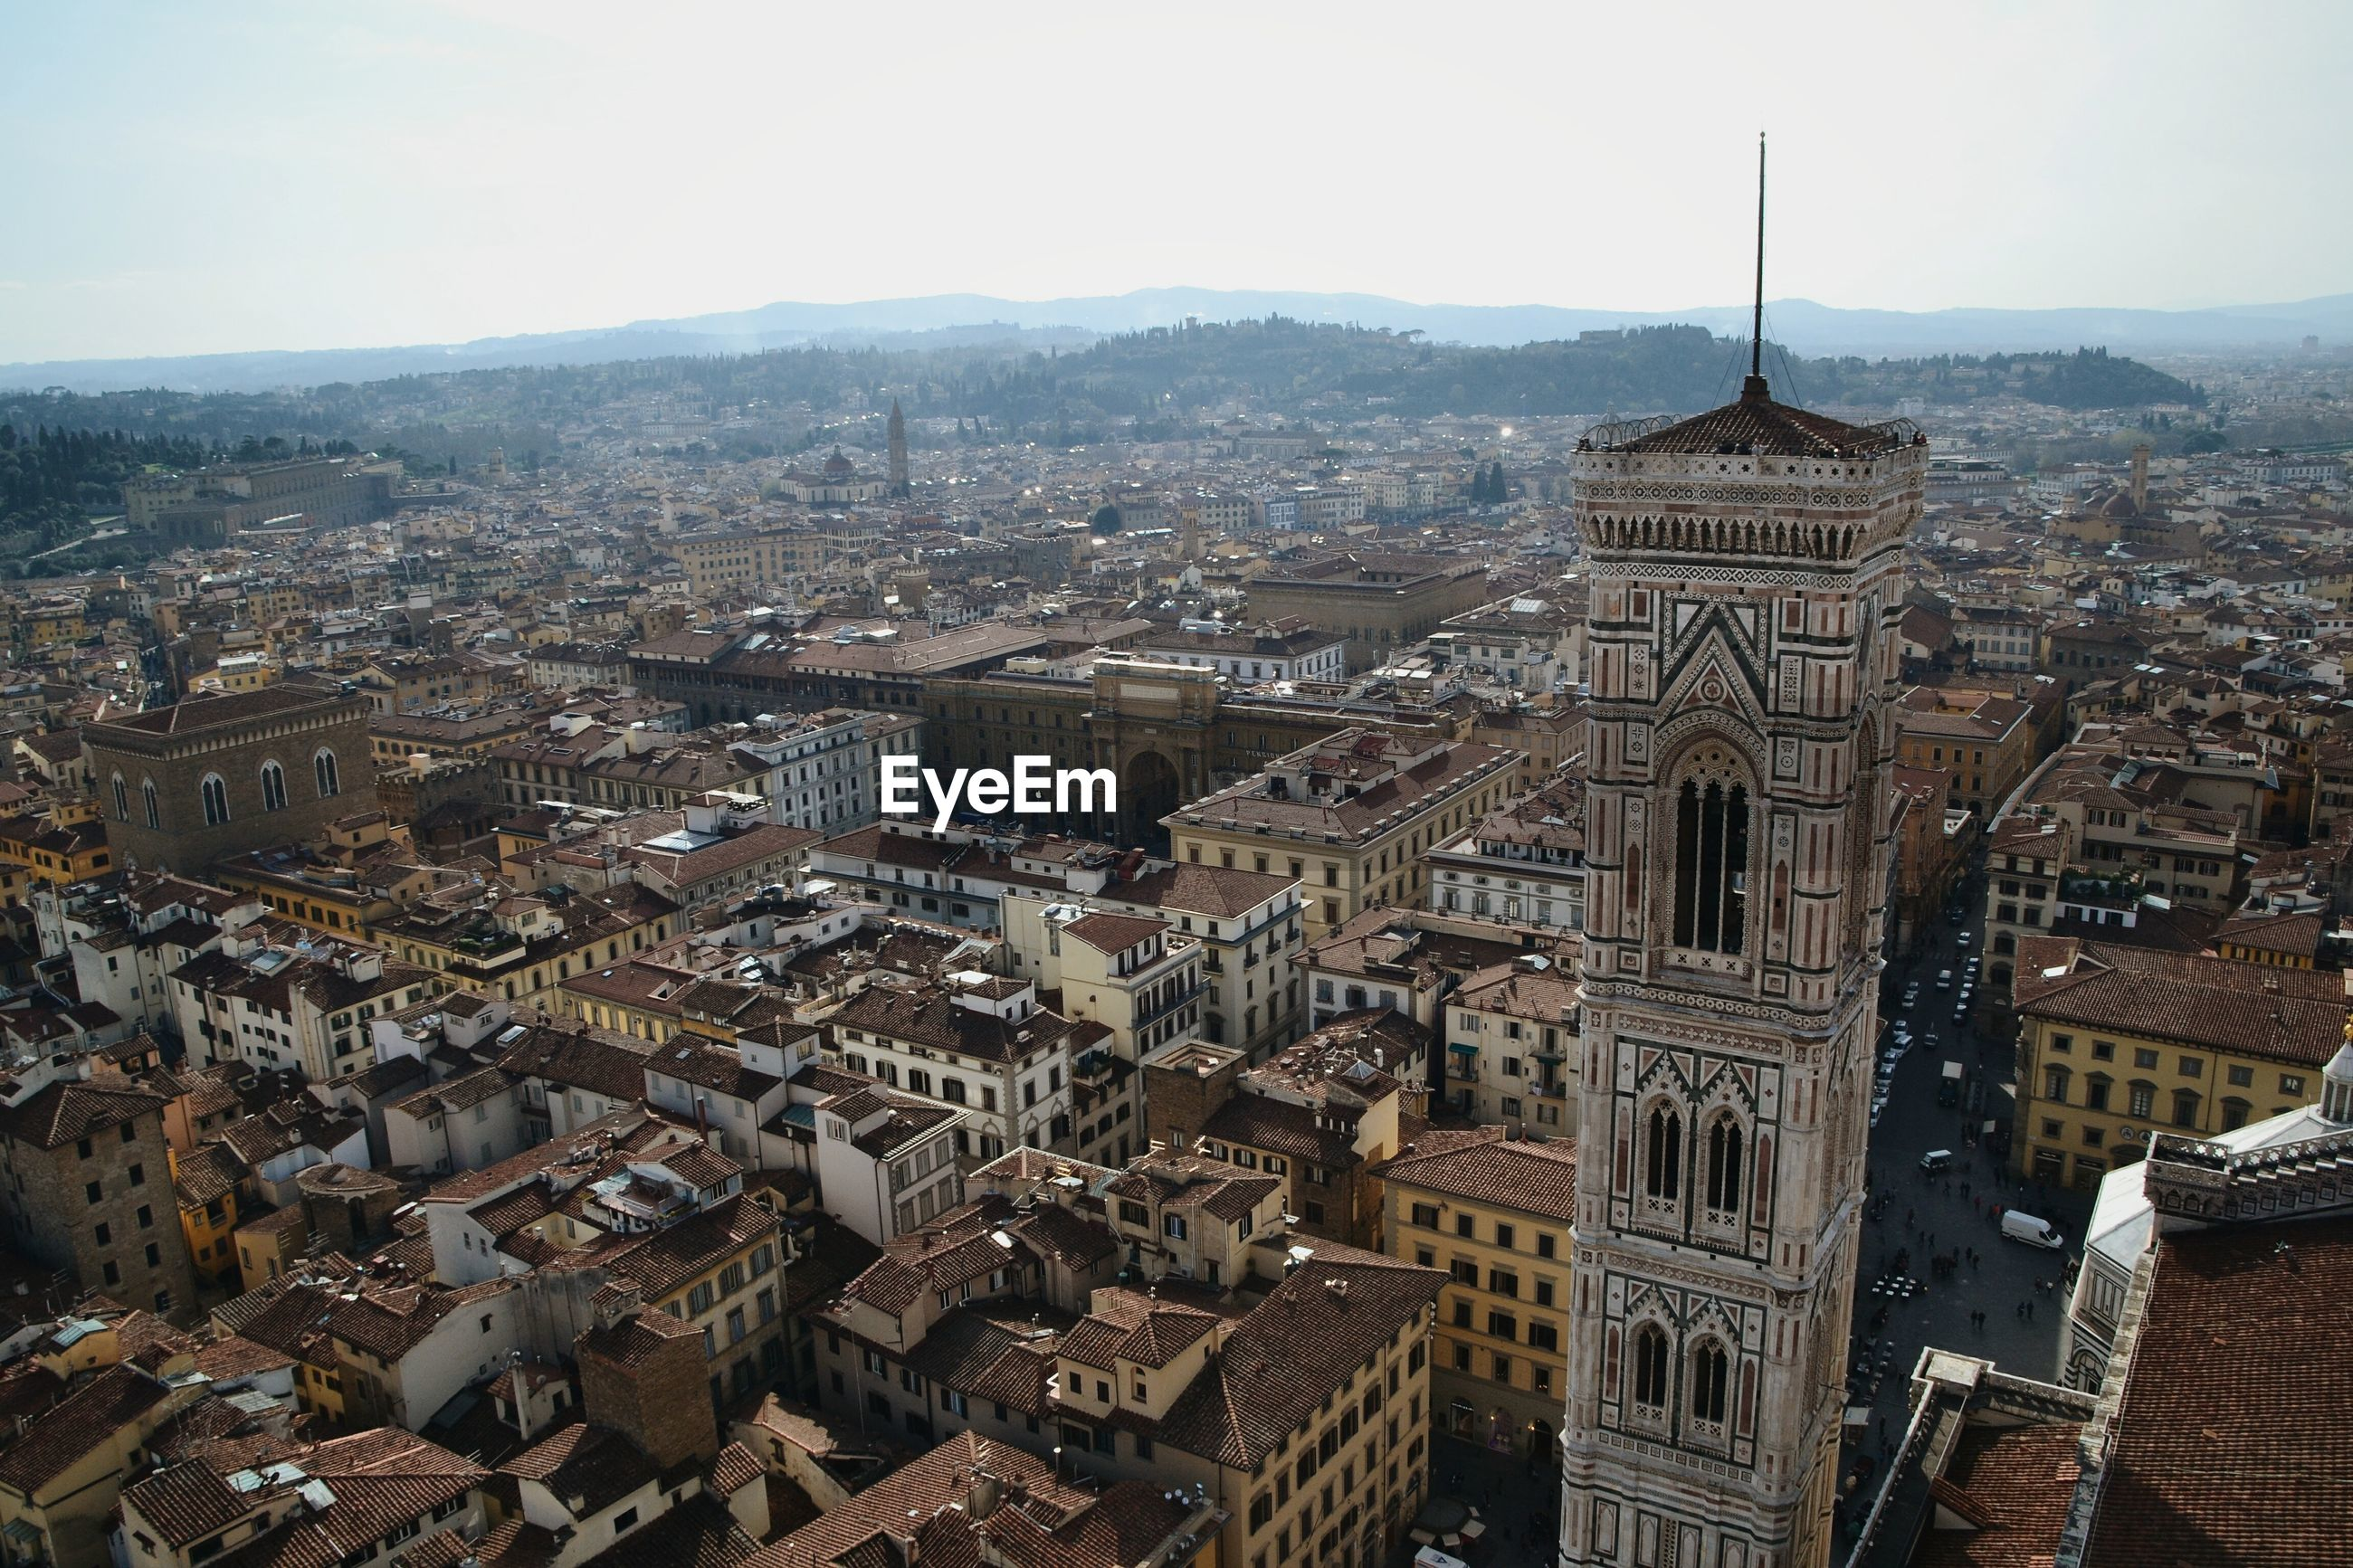 High angle view of duomo santa maria del fiore bell tower in city